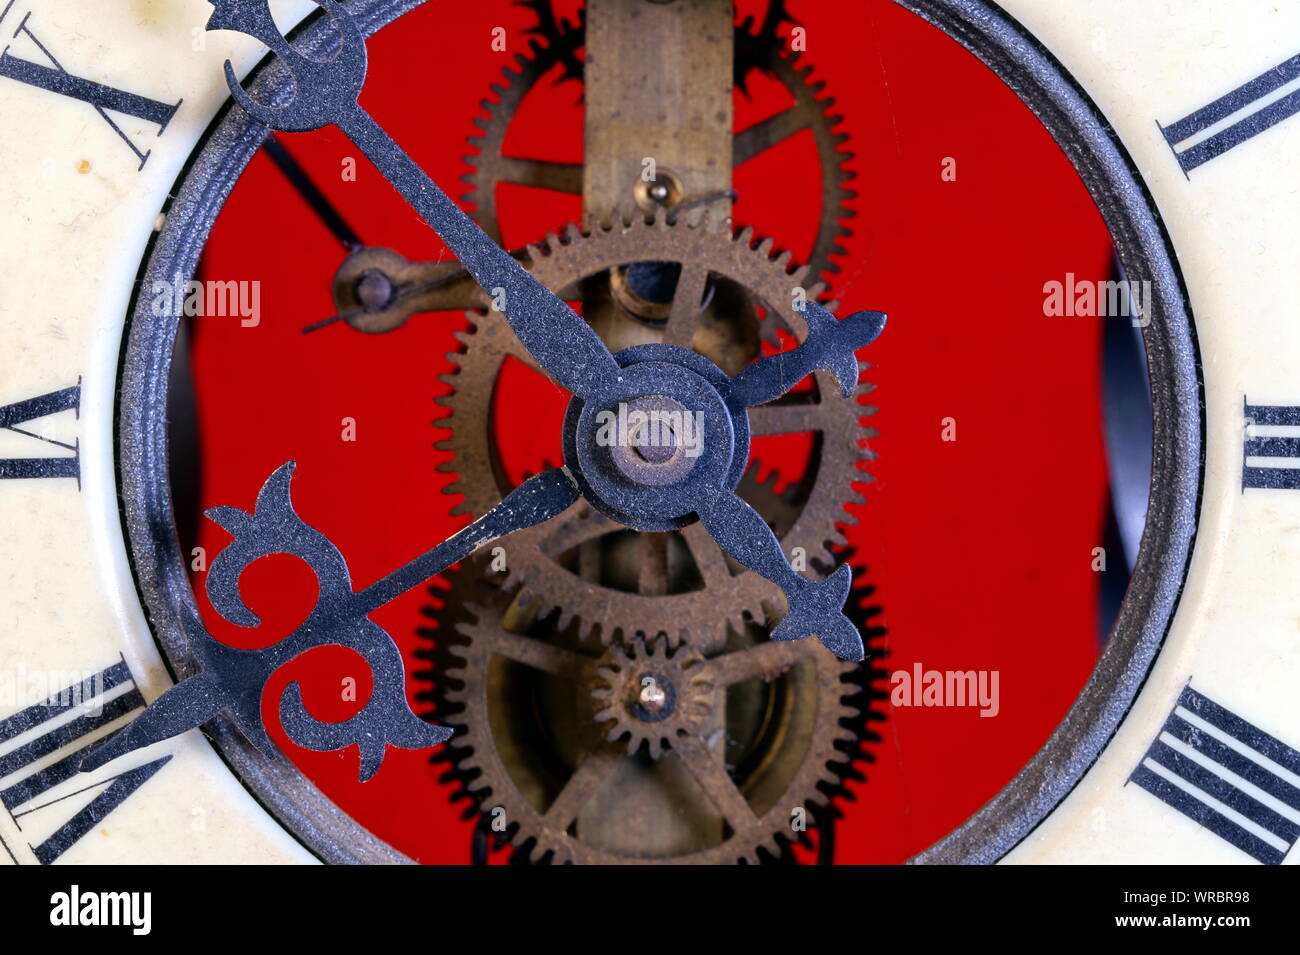 old metal dusty mechanical clock with moving gears and screws. Brass cog wheels, Close view of old rusty clock mechanism with gears and cogs. Stock Photo